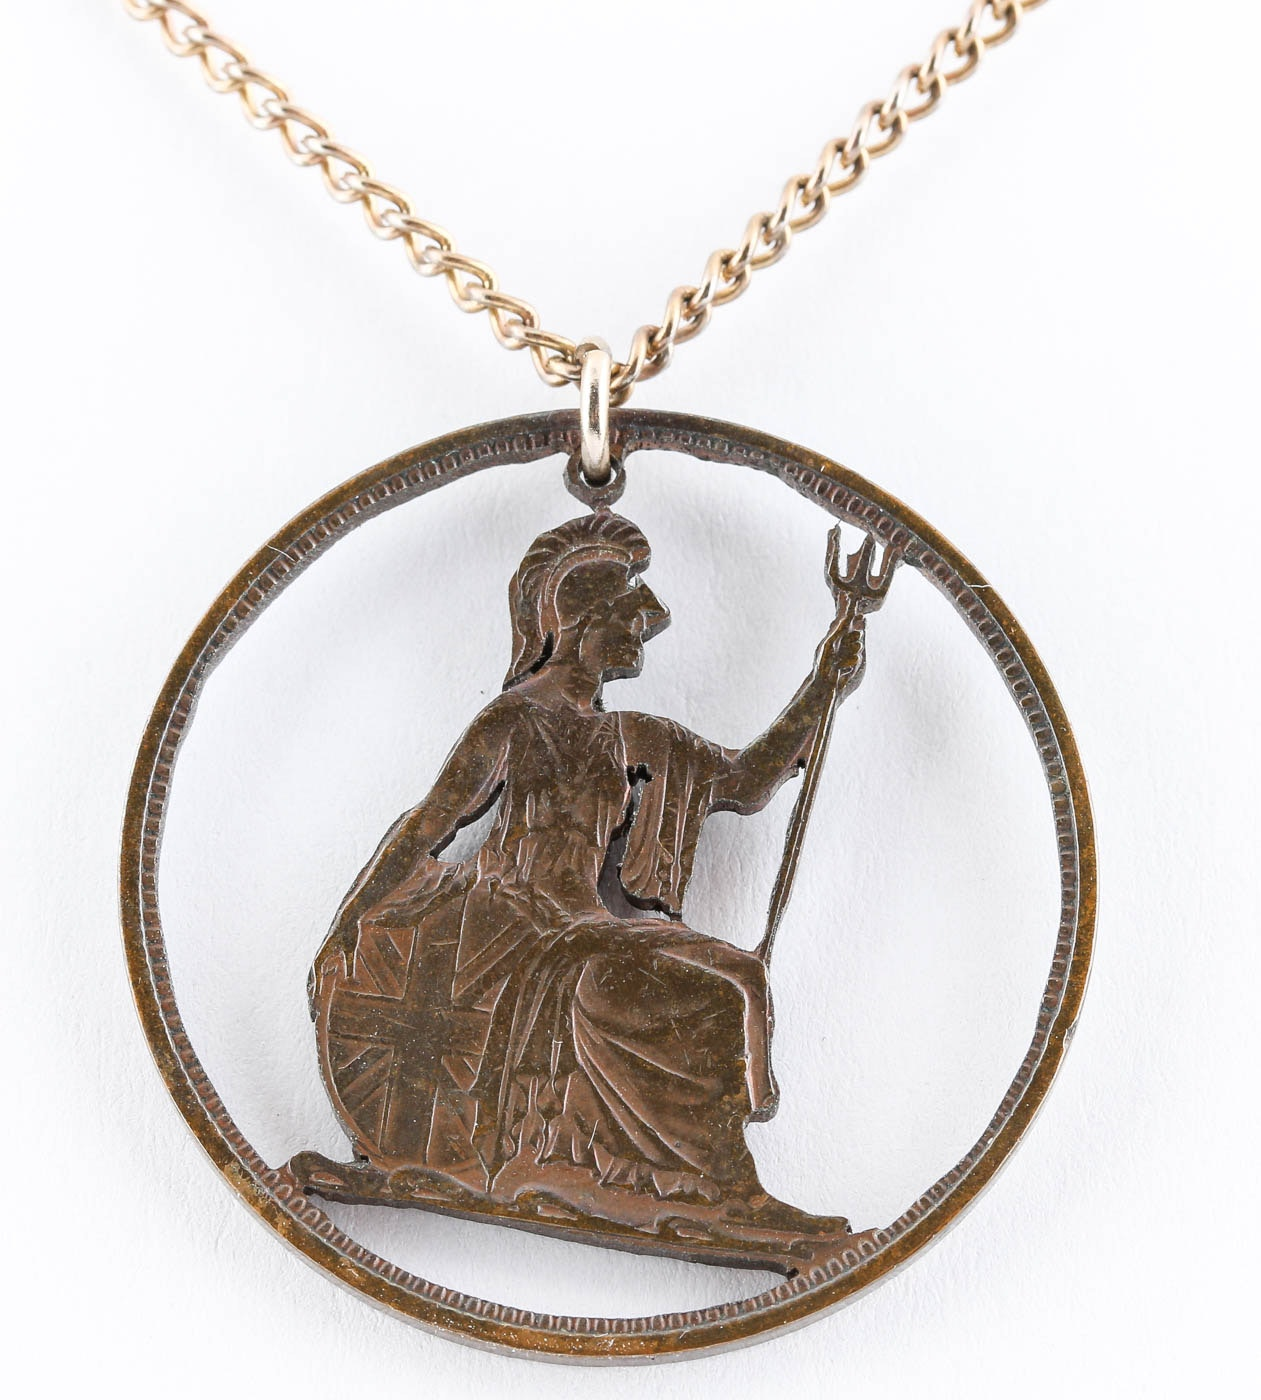 English Large Penny Cutout Pendant with Gold Tone Chain